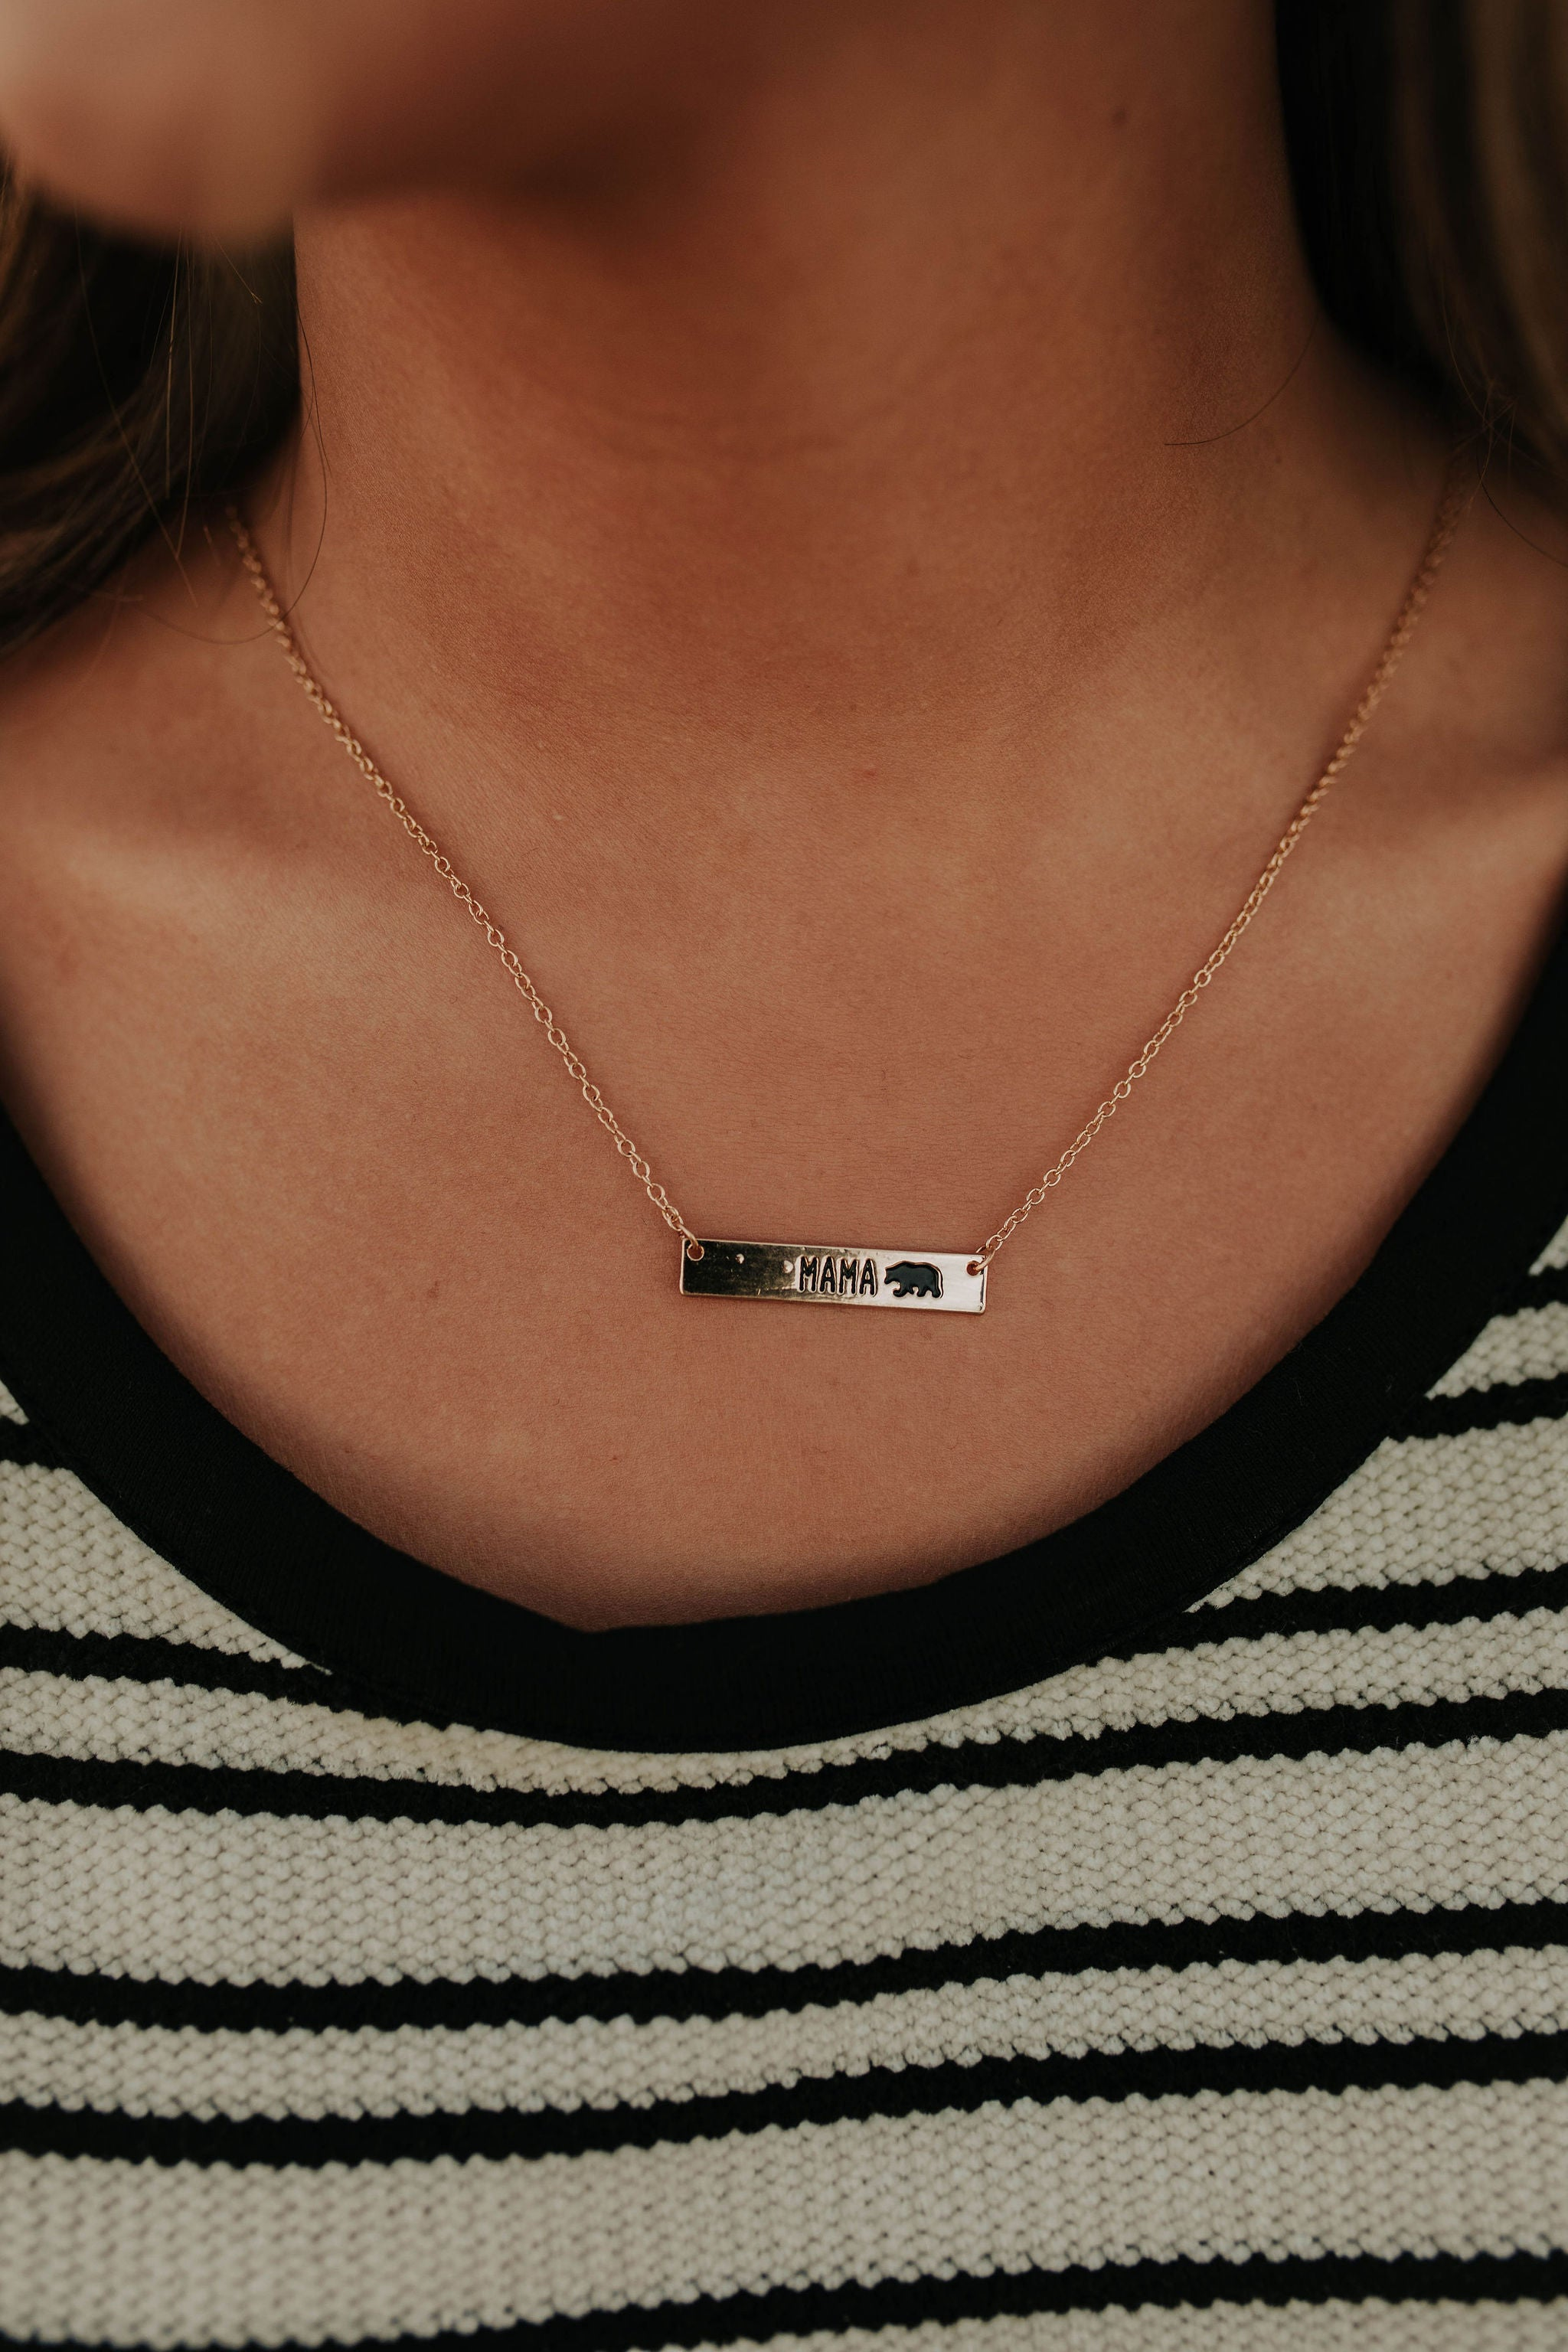 THE MAMA BEAR GOLD BAR NECKLACE